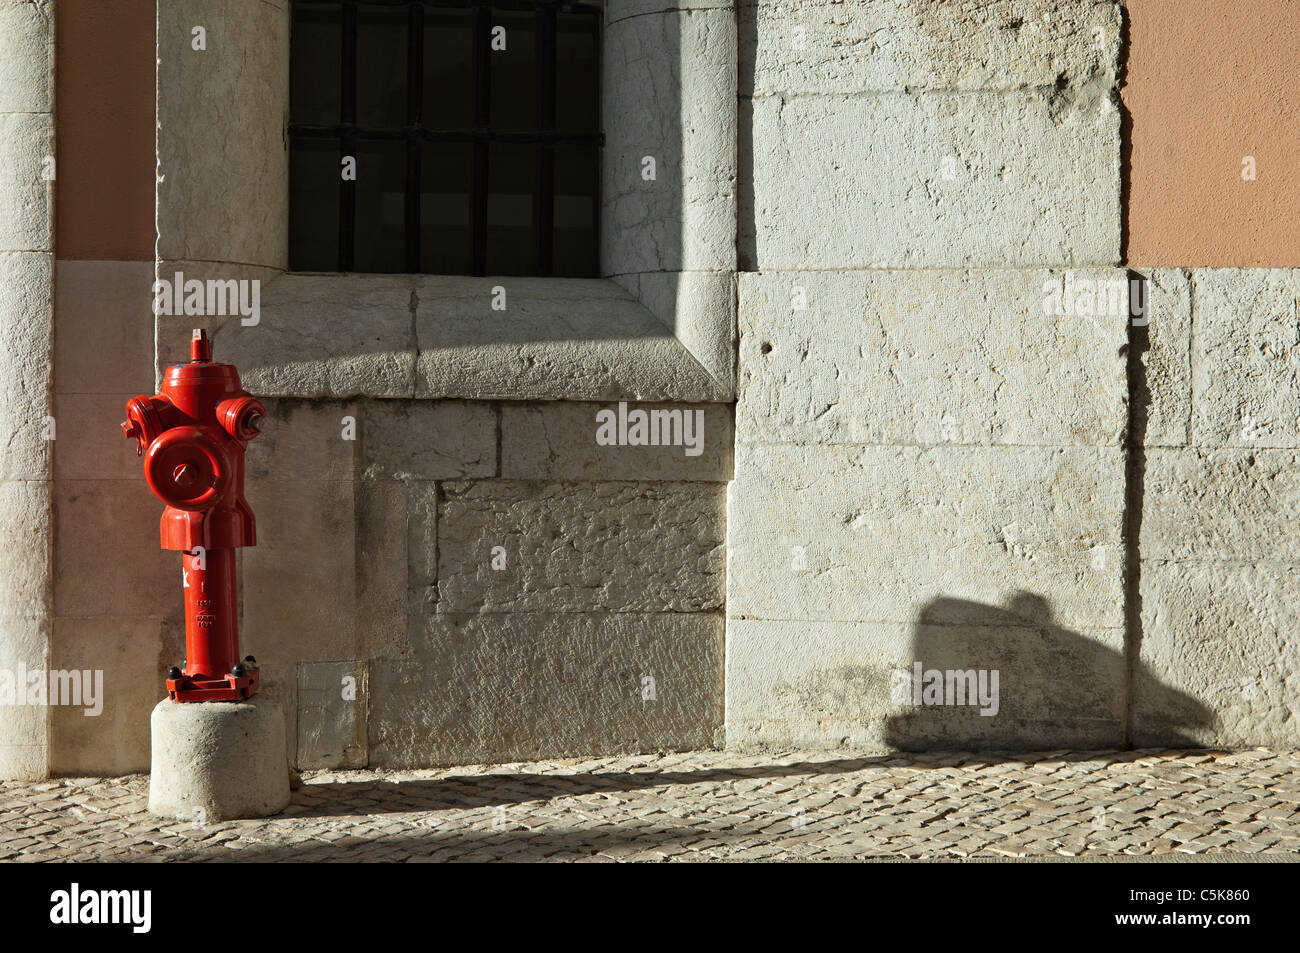 Red fire hydrant in a street of Lisbon, Portugal - Stock Image